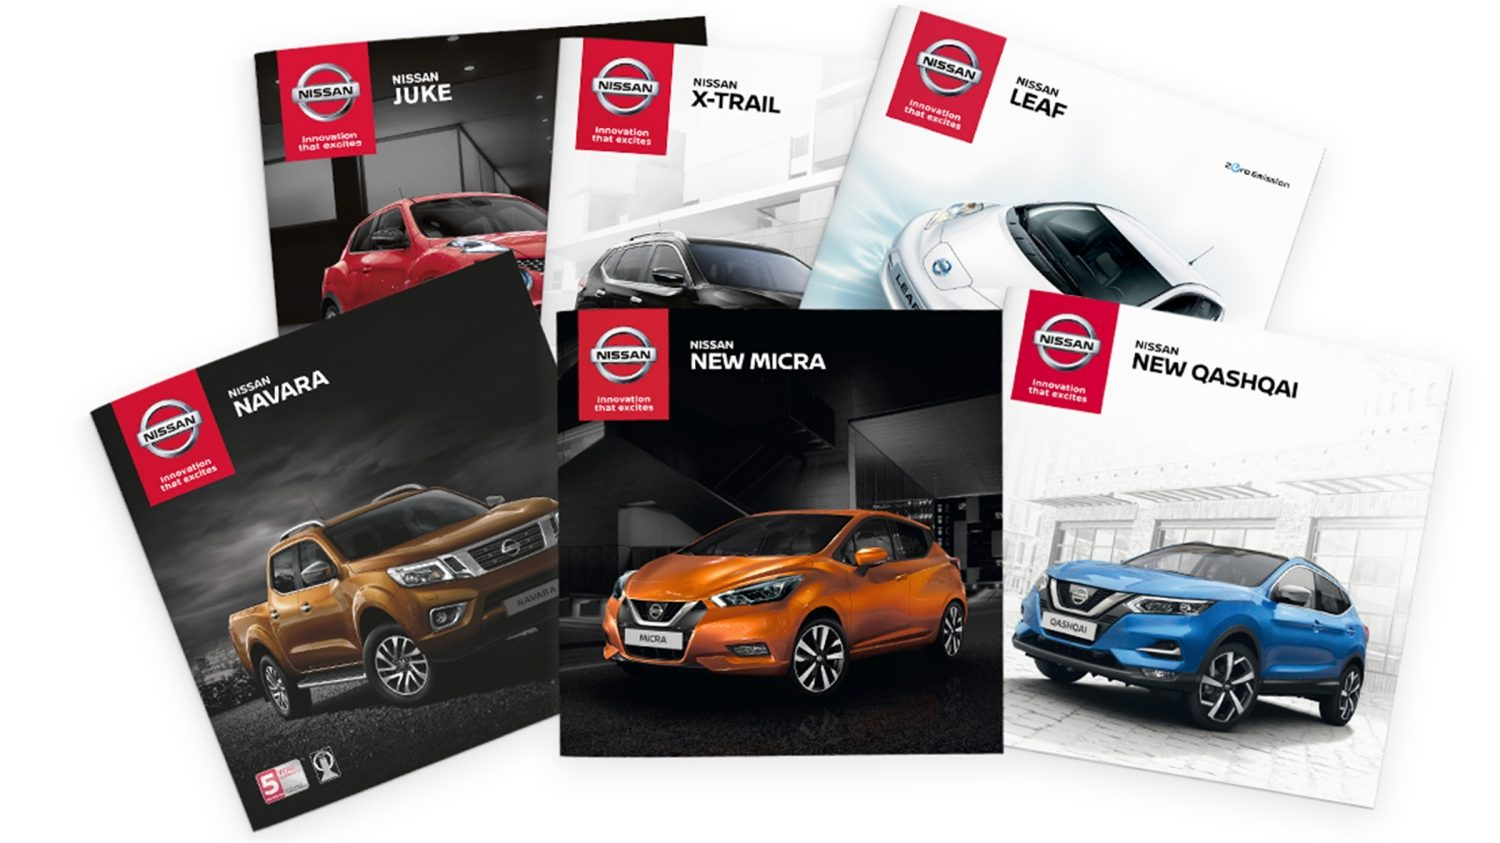 Nissan X-TRAIL brochure